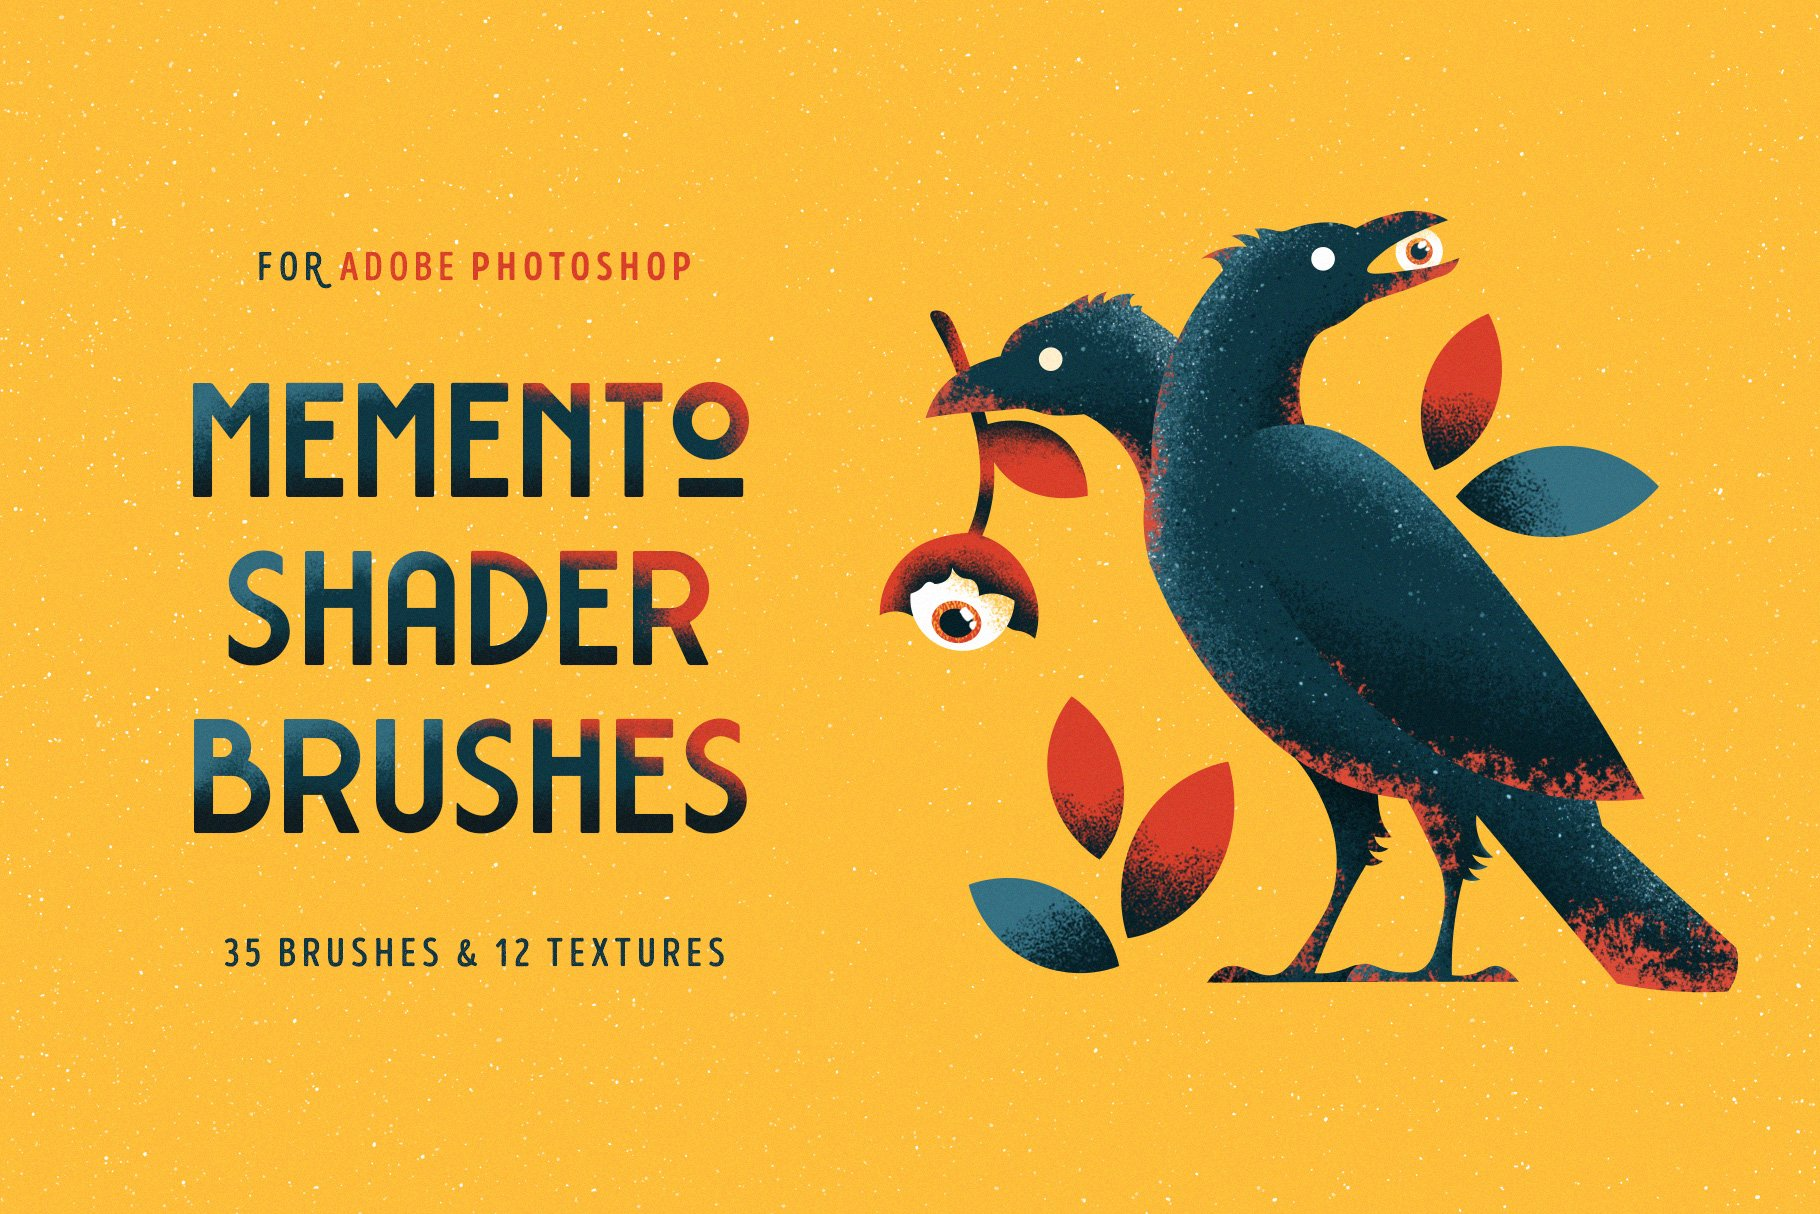 Memento Shader Brushes For Photoshop